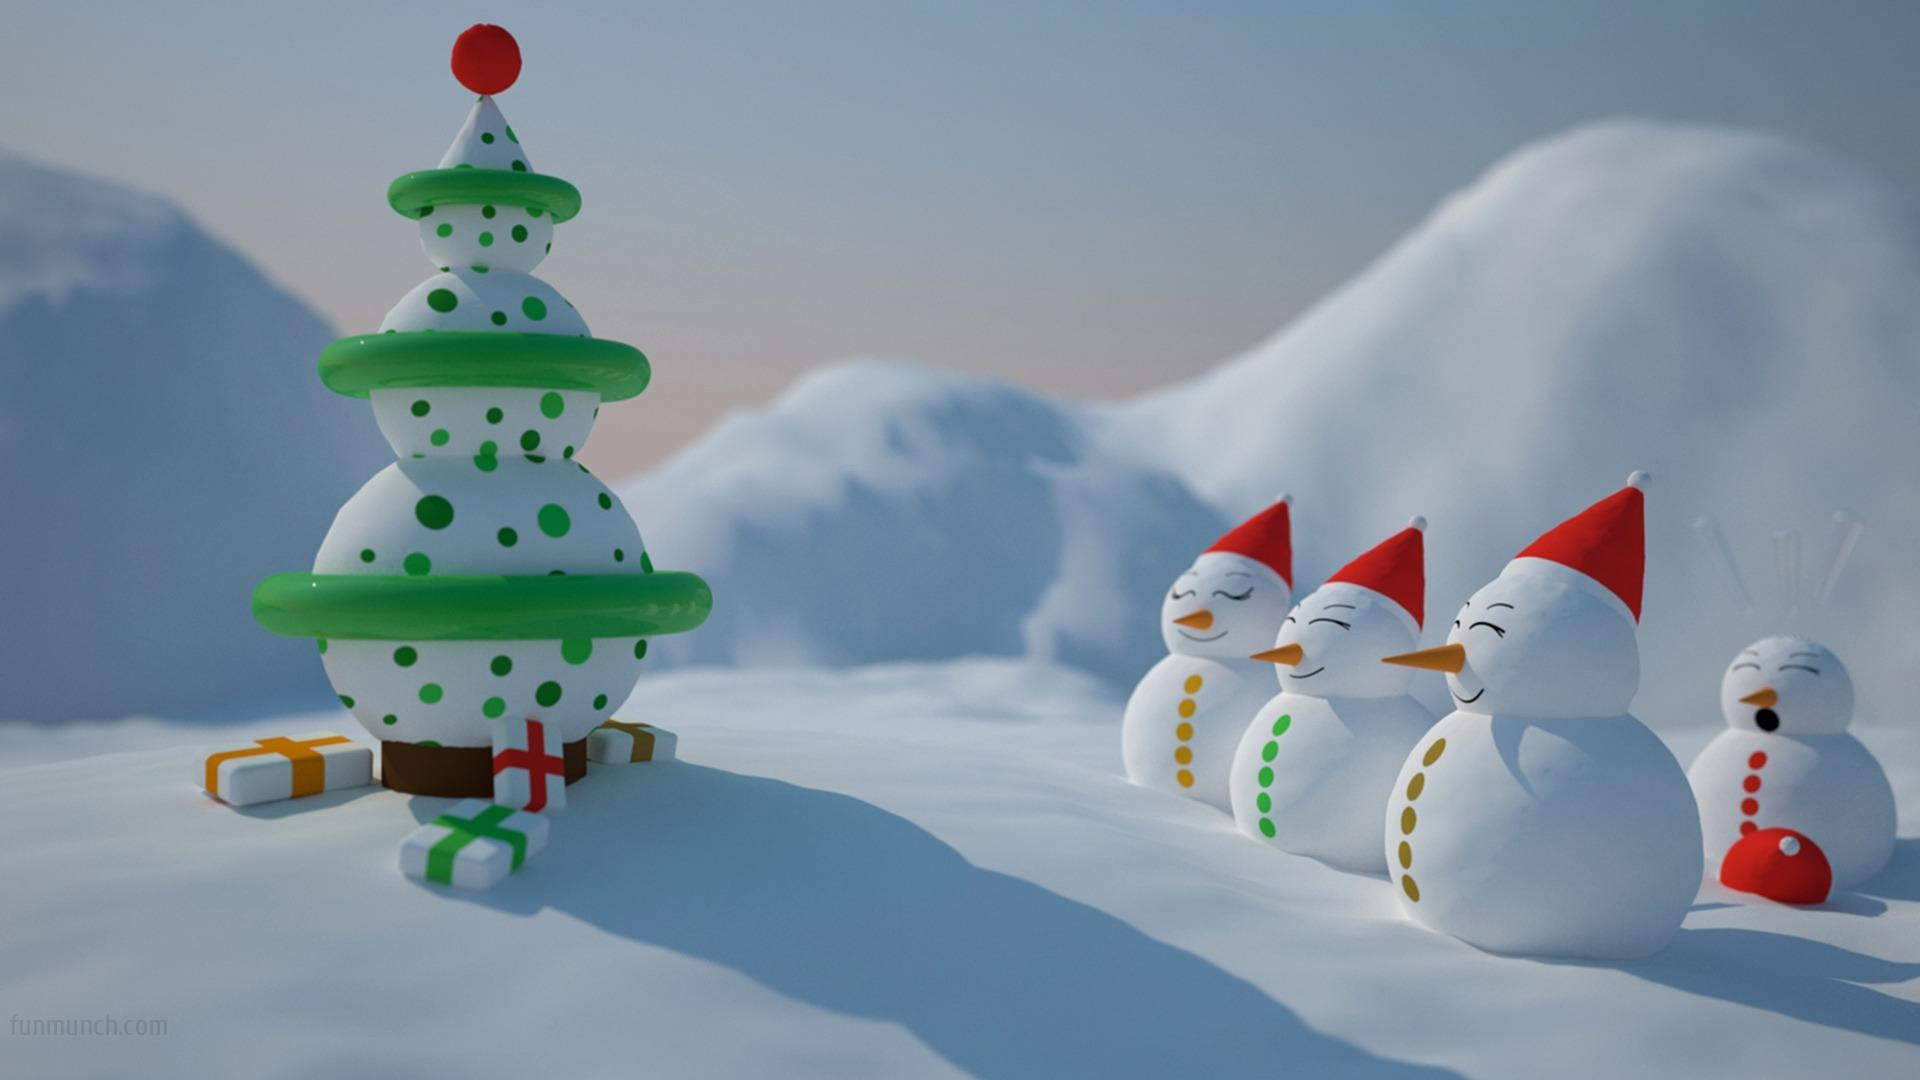 Christmas Wallpapers 1920x1080